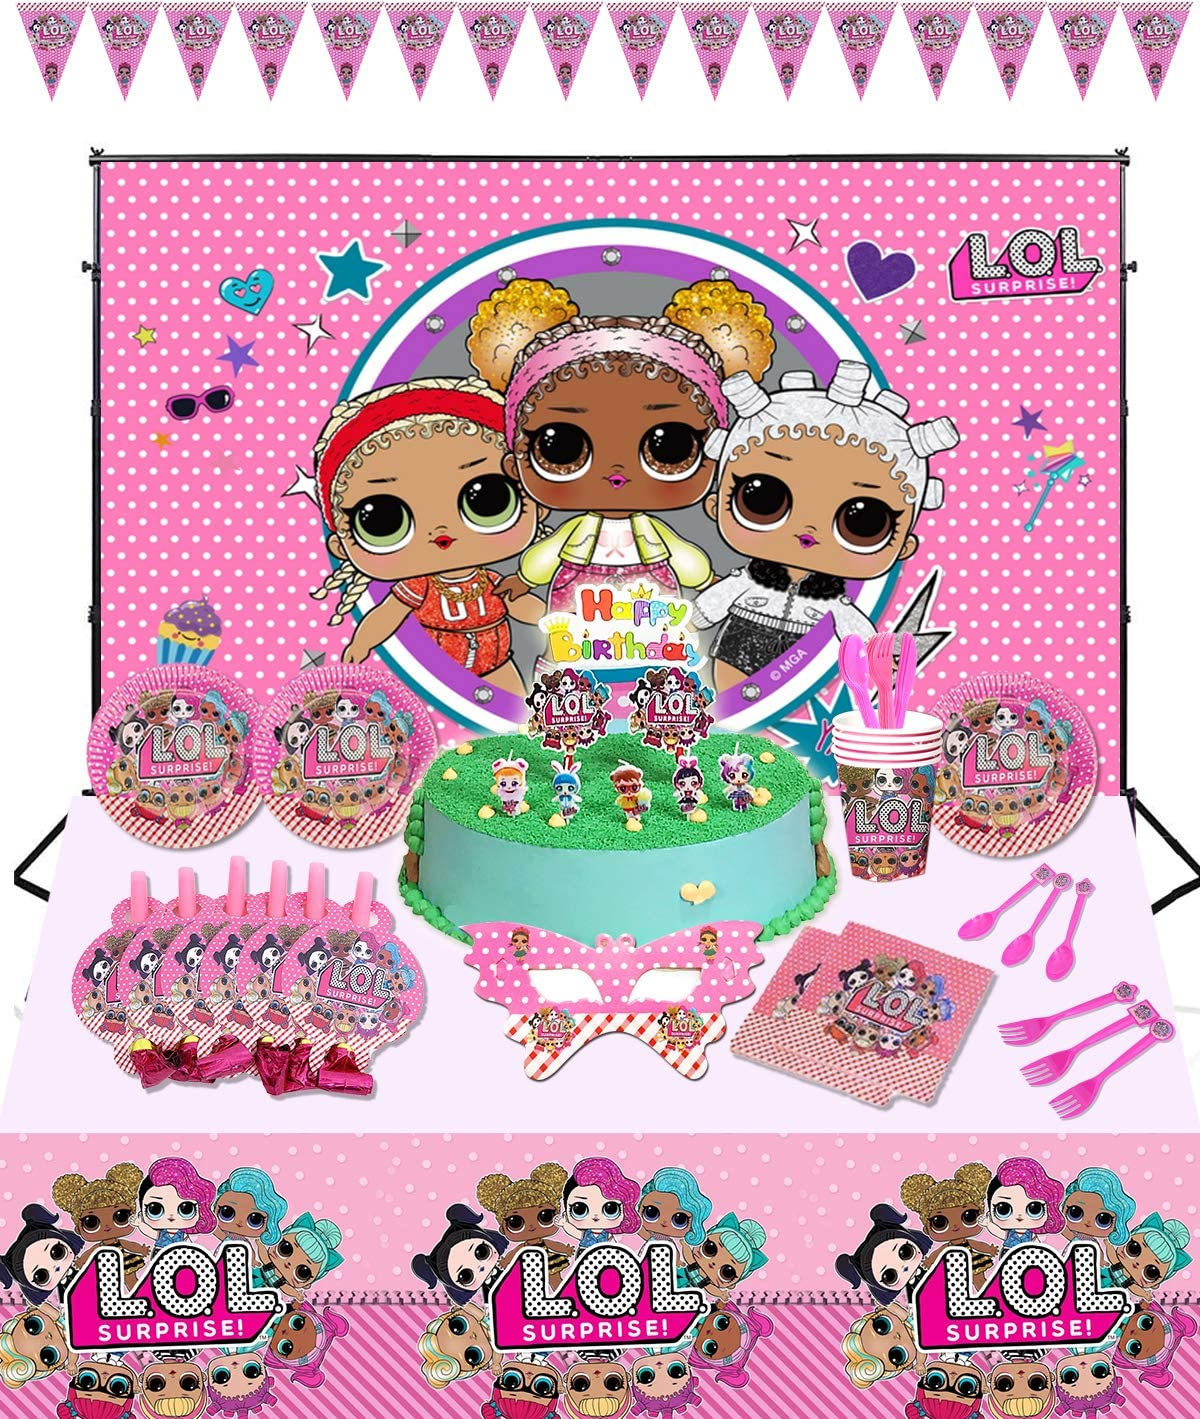 Lo1 Birthday Party Supplies Set,104pcs Birthday Decorations,Tablecloth,Plates, Napkins,Pennant,Blowouts,Knife,Spoon, 10Pcs Fork,paper cups,mask,Cake Candles Toppers,Cake Topper,Decorations Backdrop1